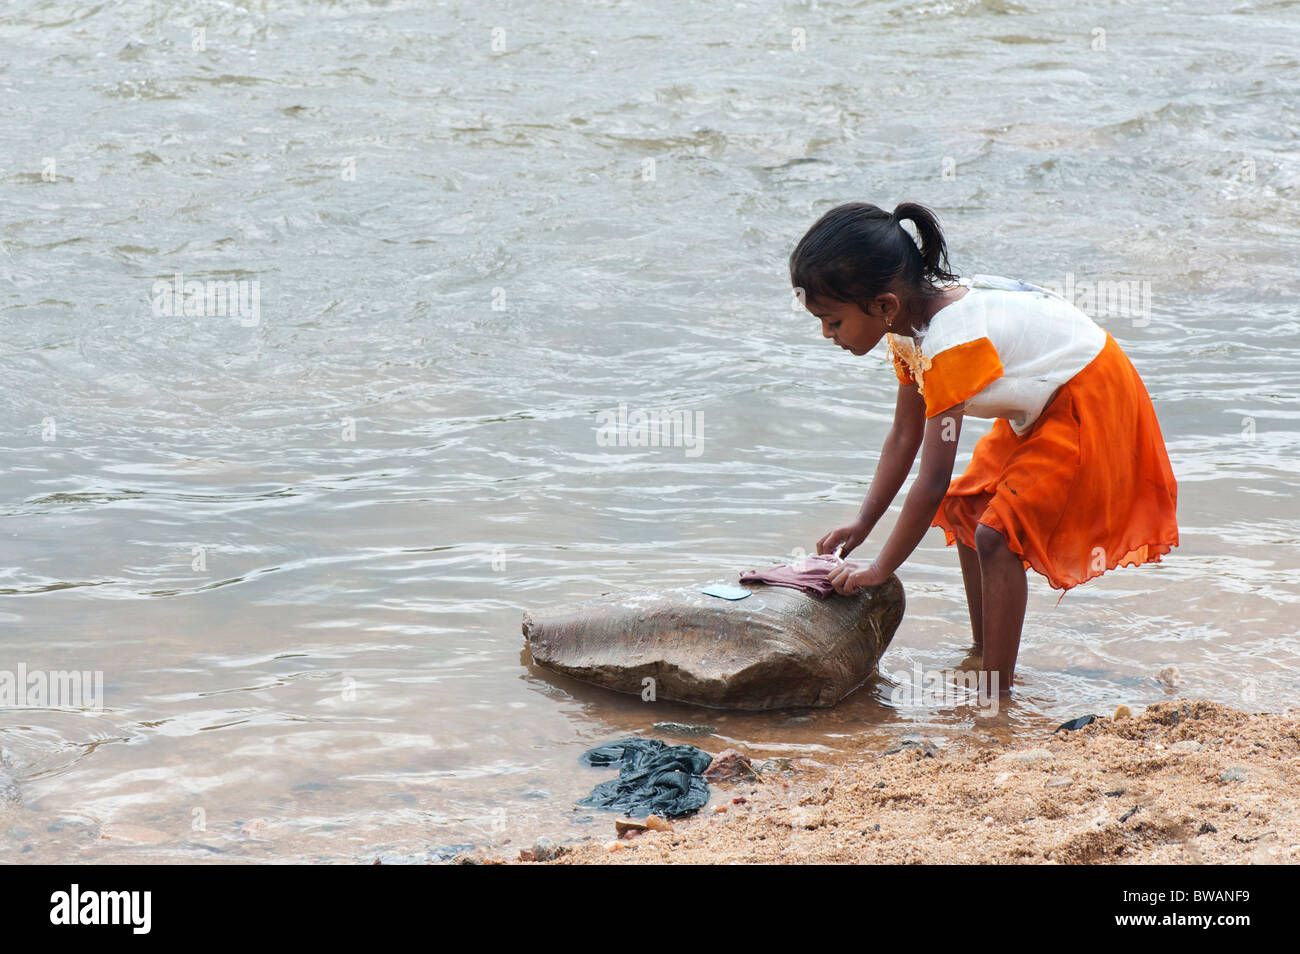 girl washing clothes in river stockfotos girl washing clothes in river bilder alamy. Black Bedroom Furniture Sets. Home Design Ideas